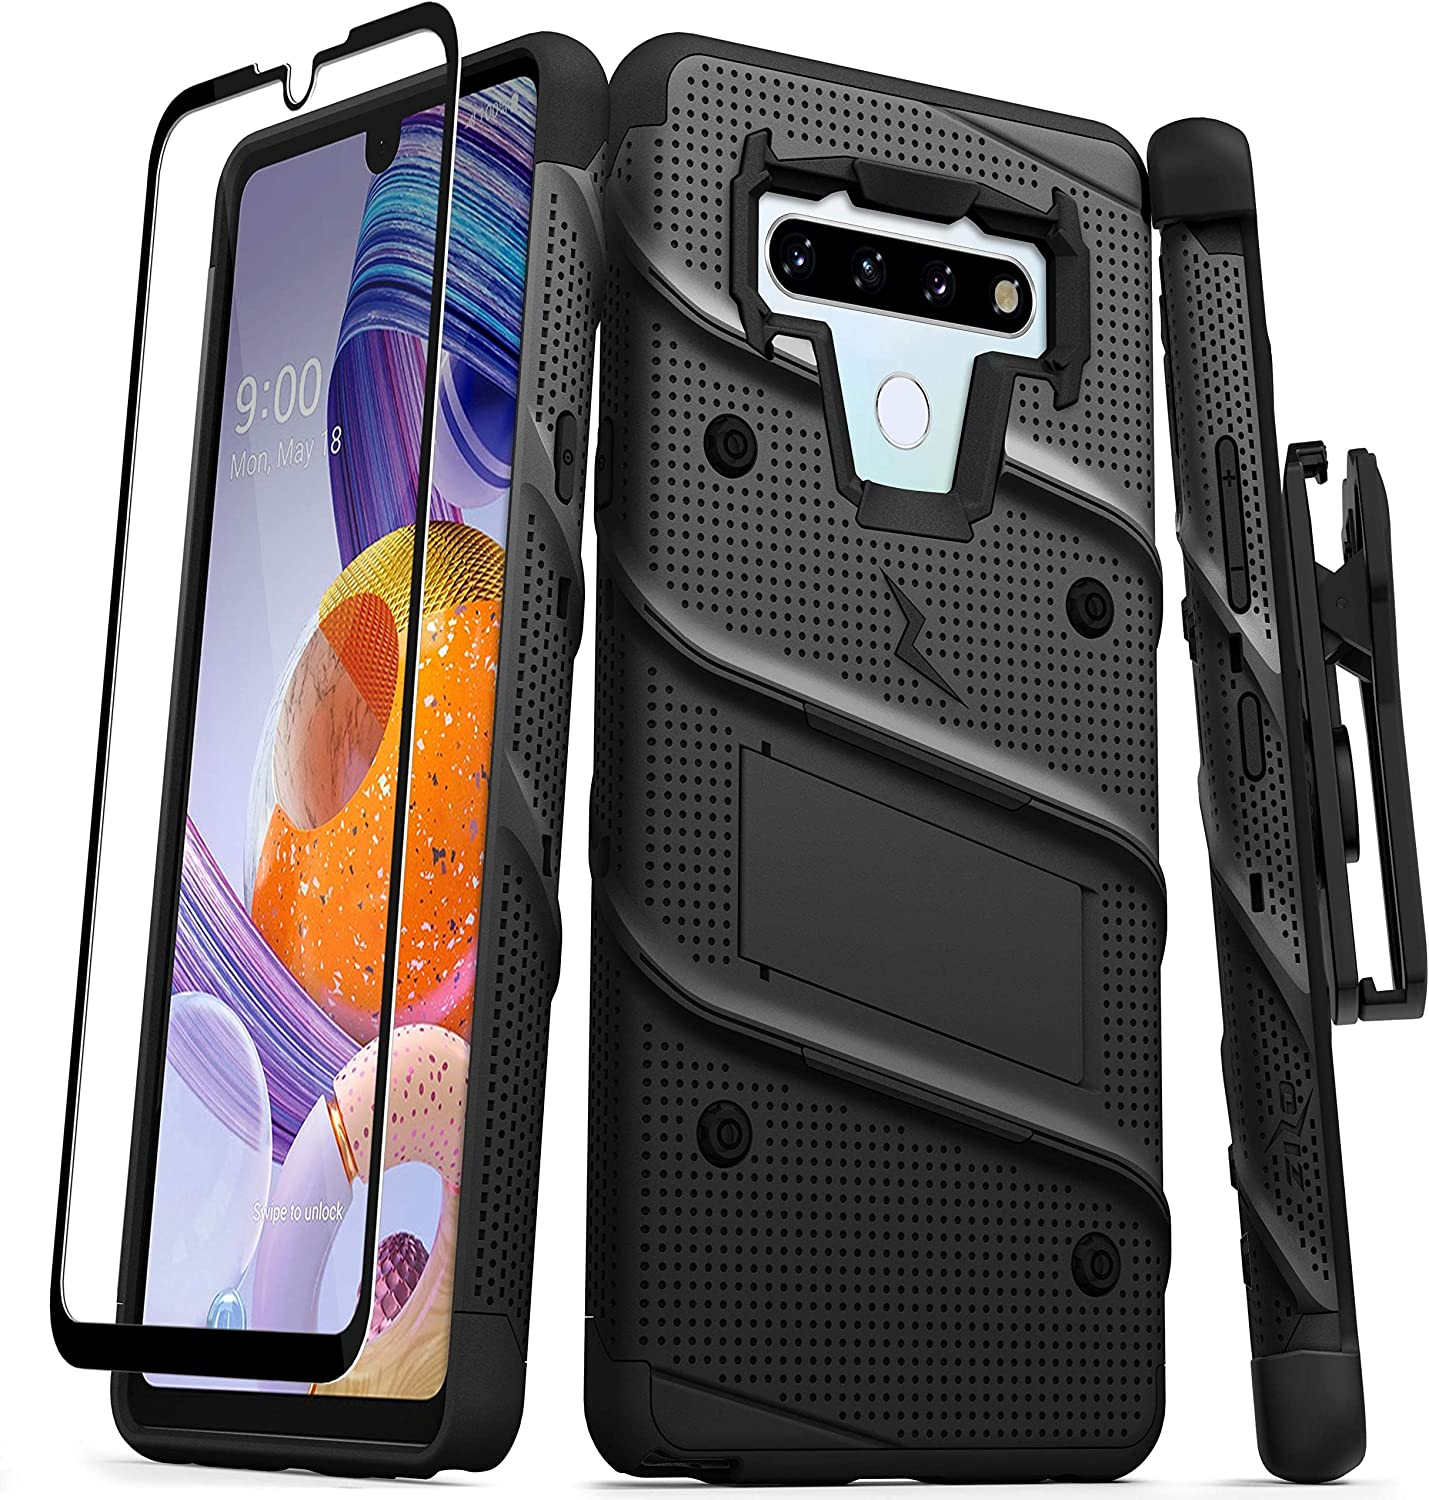 ZIZO Bolt Series for LG Stylo 6 Case with Screen Protector Kickstand Holster Lanyard - Black & Black